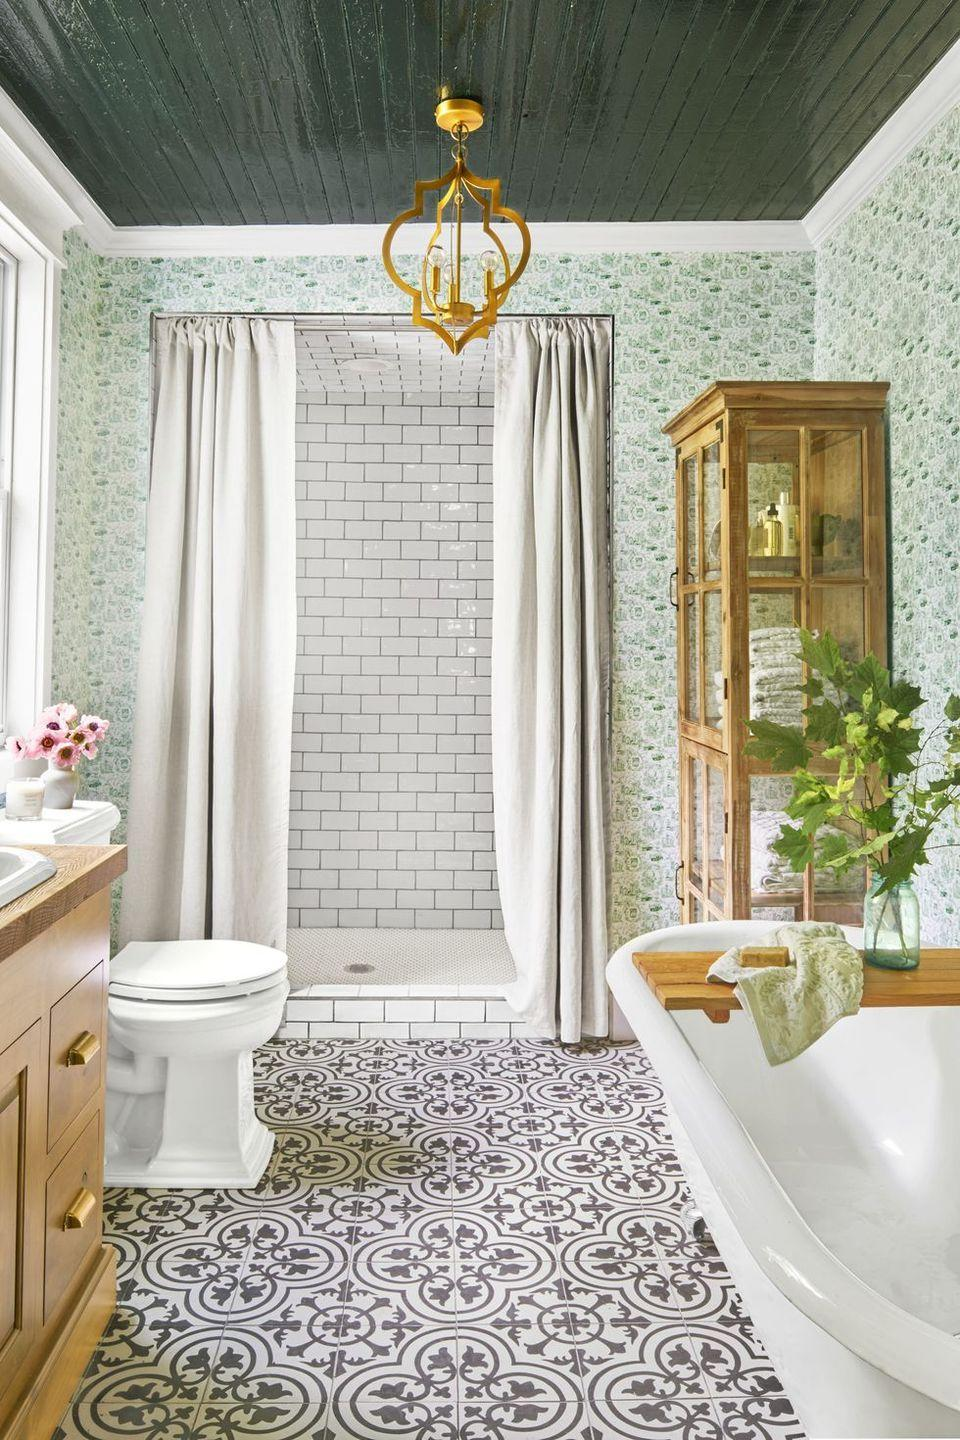 <p>A mix of patterned and subway tiles balance this bathroom's wallpapered walls and dark ceiling. </p>